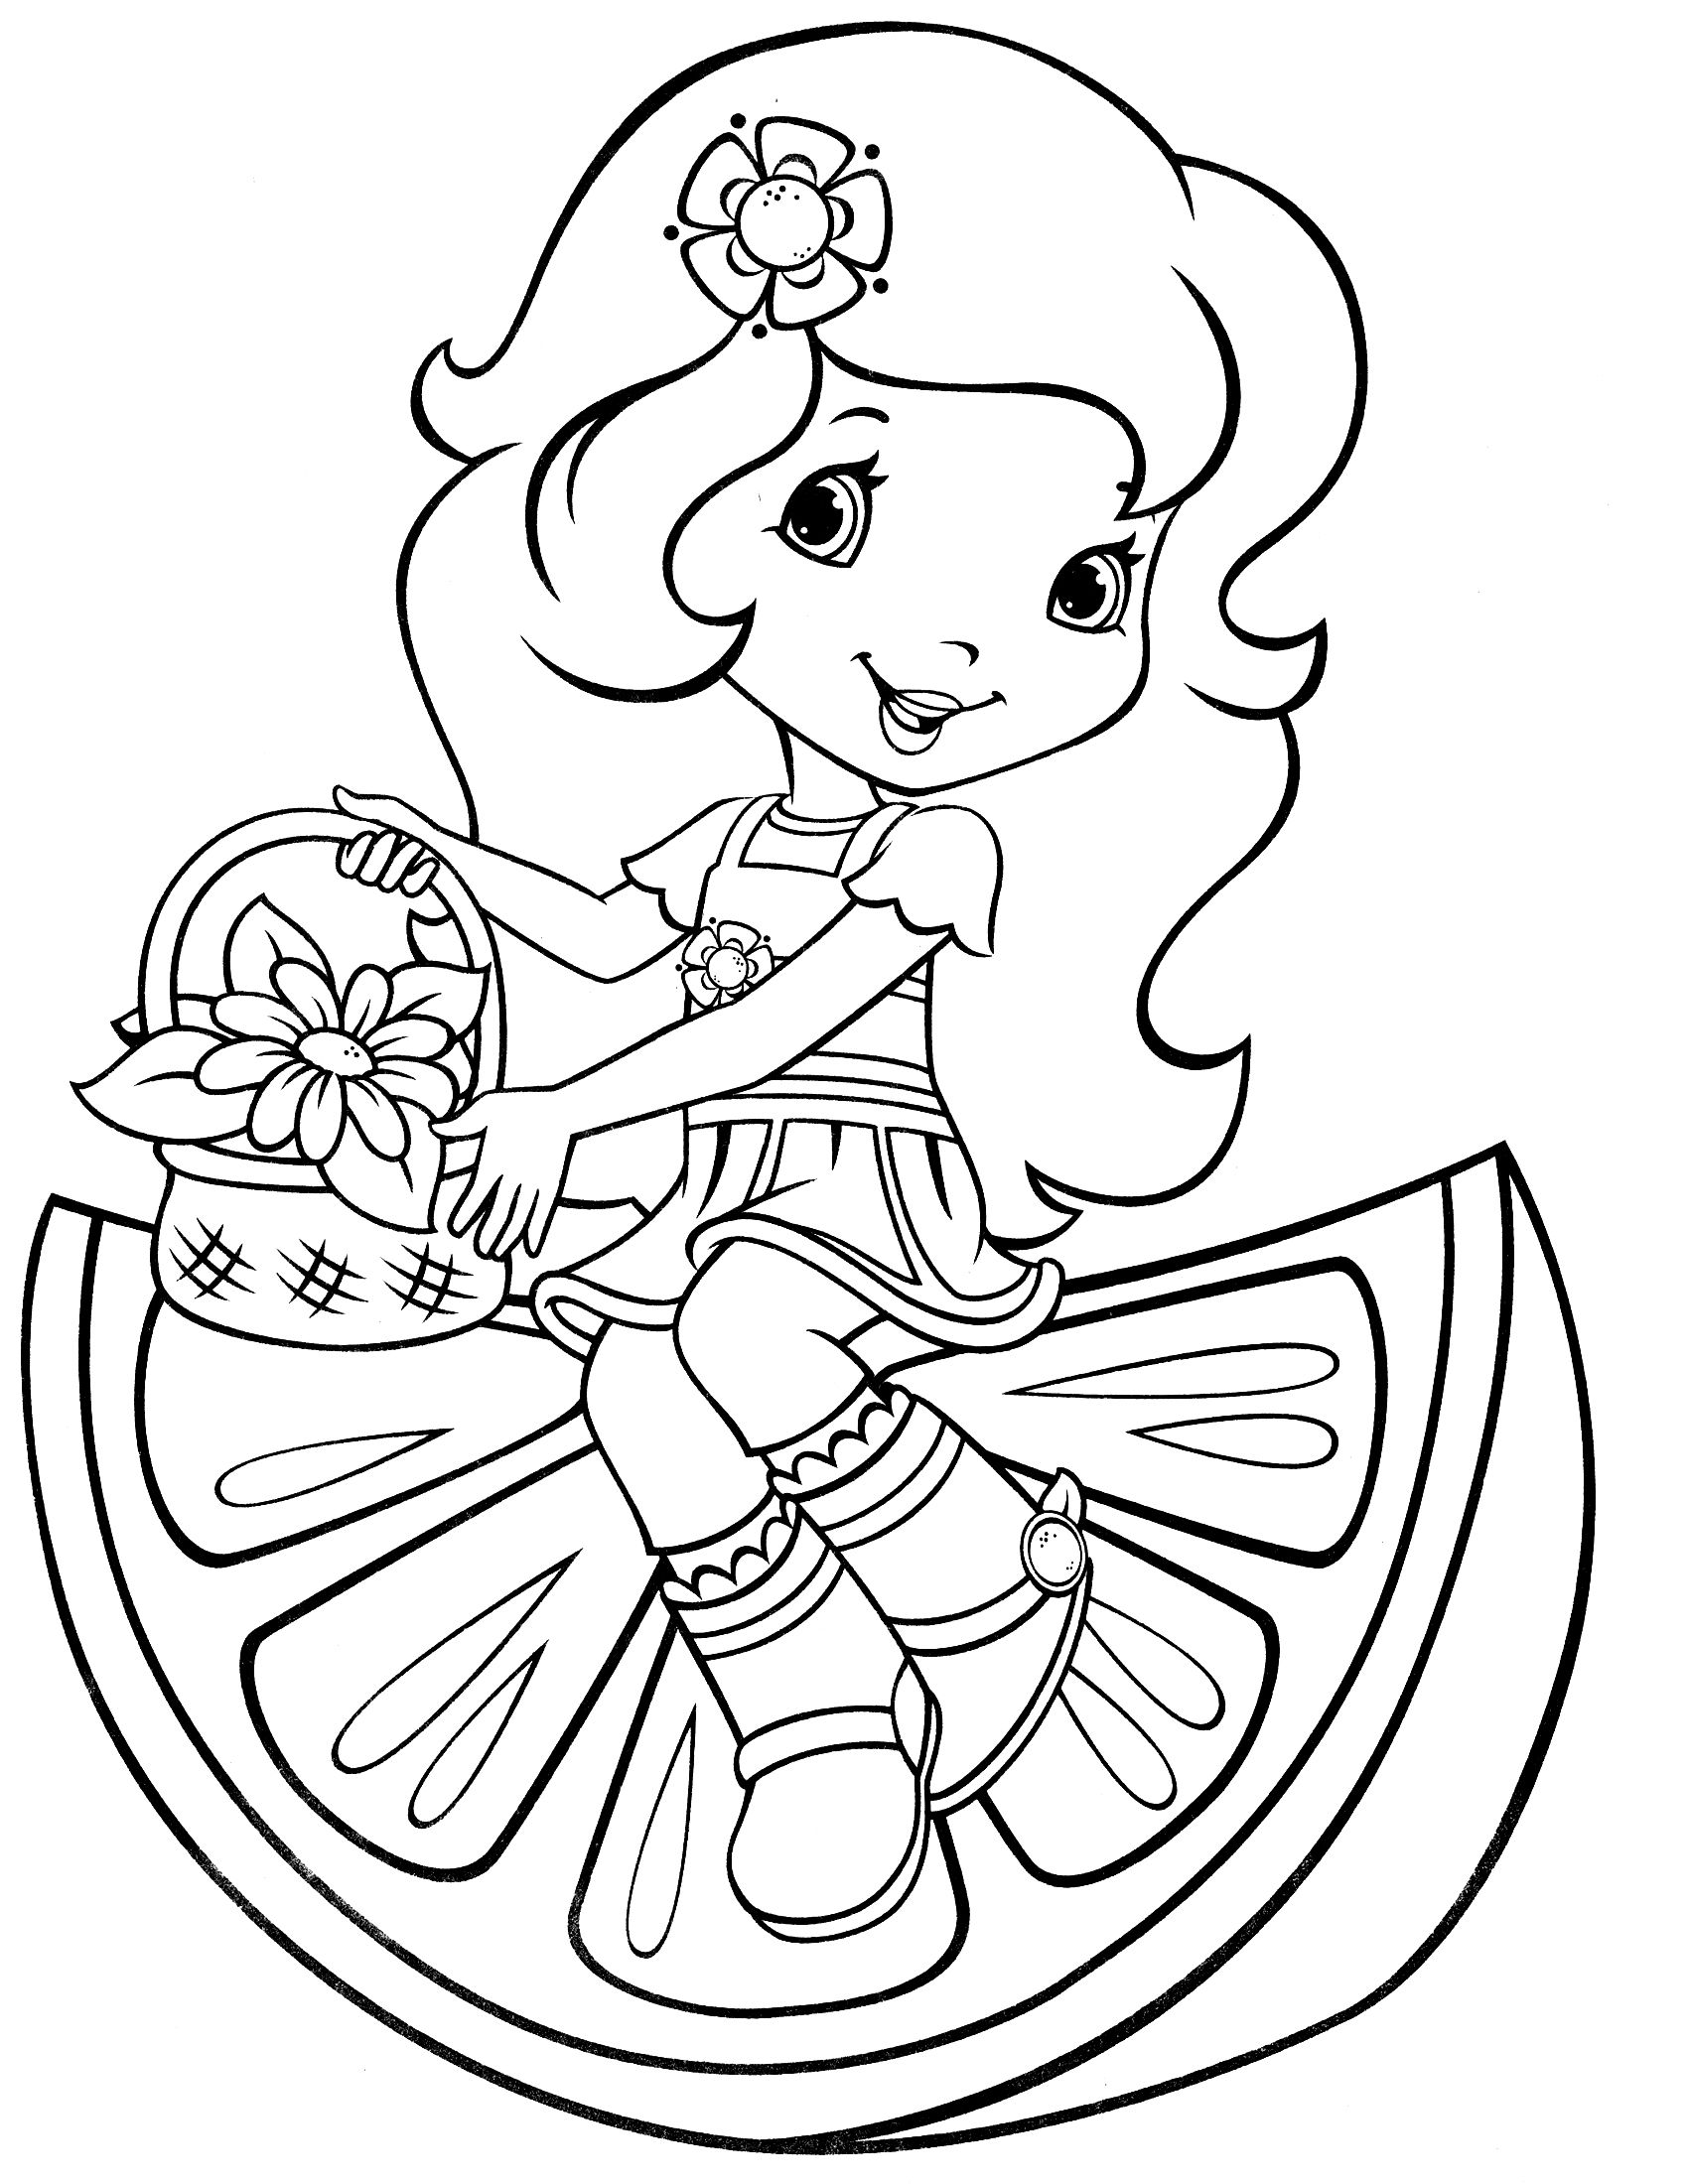 strawberry shortcake coloring page Coloring Pinterest